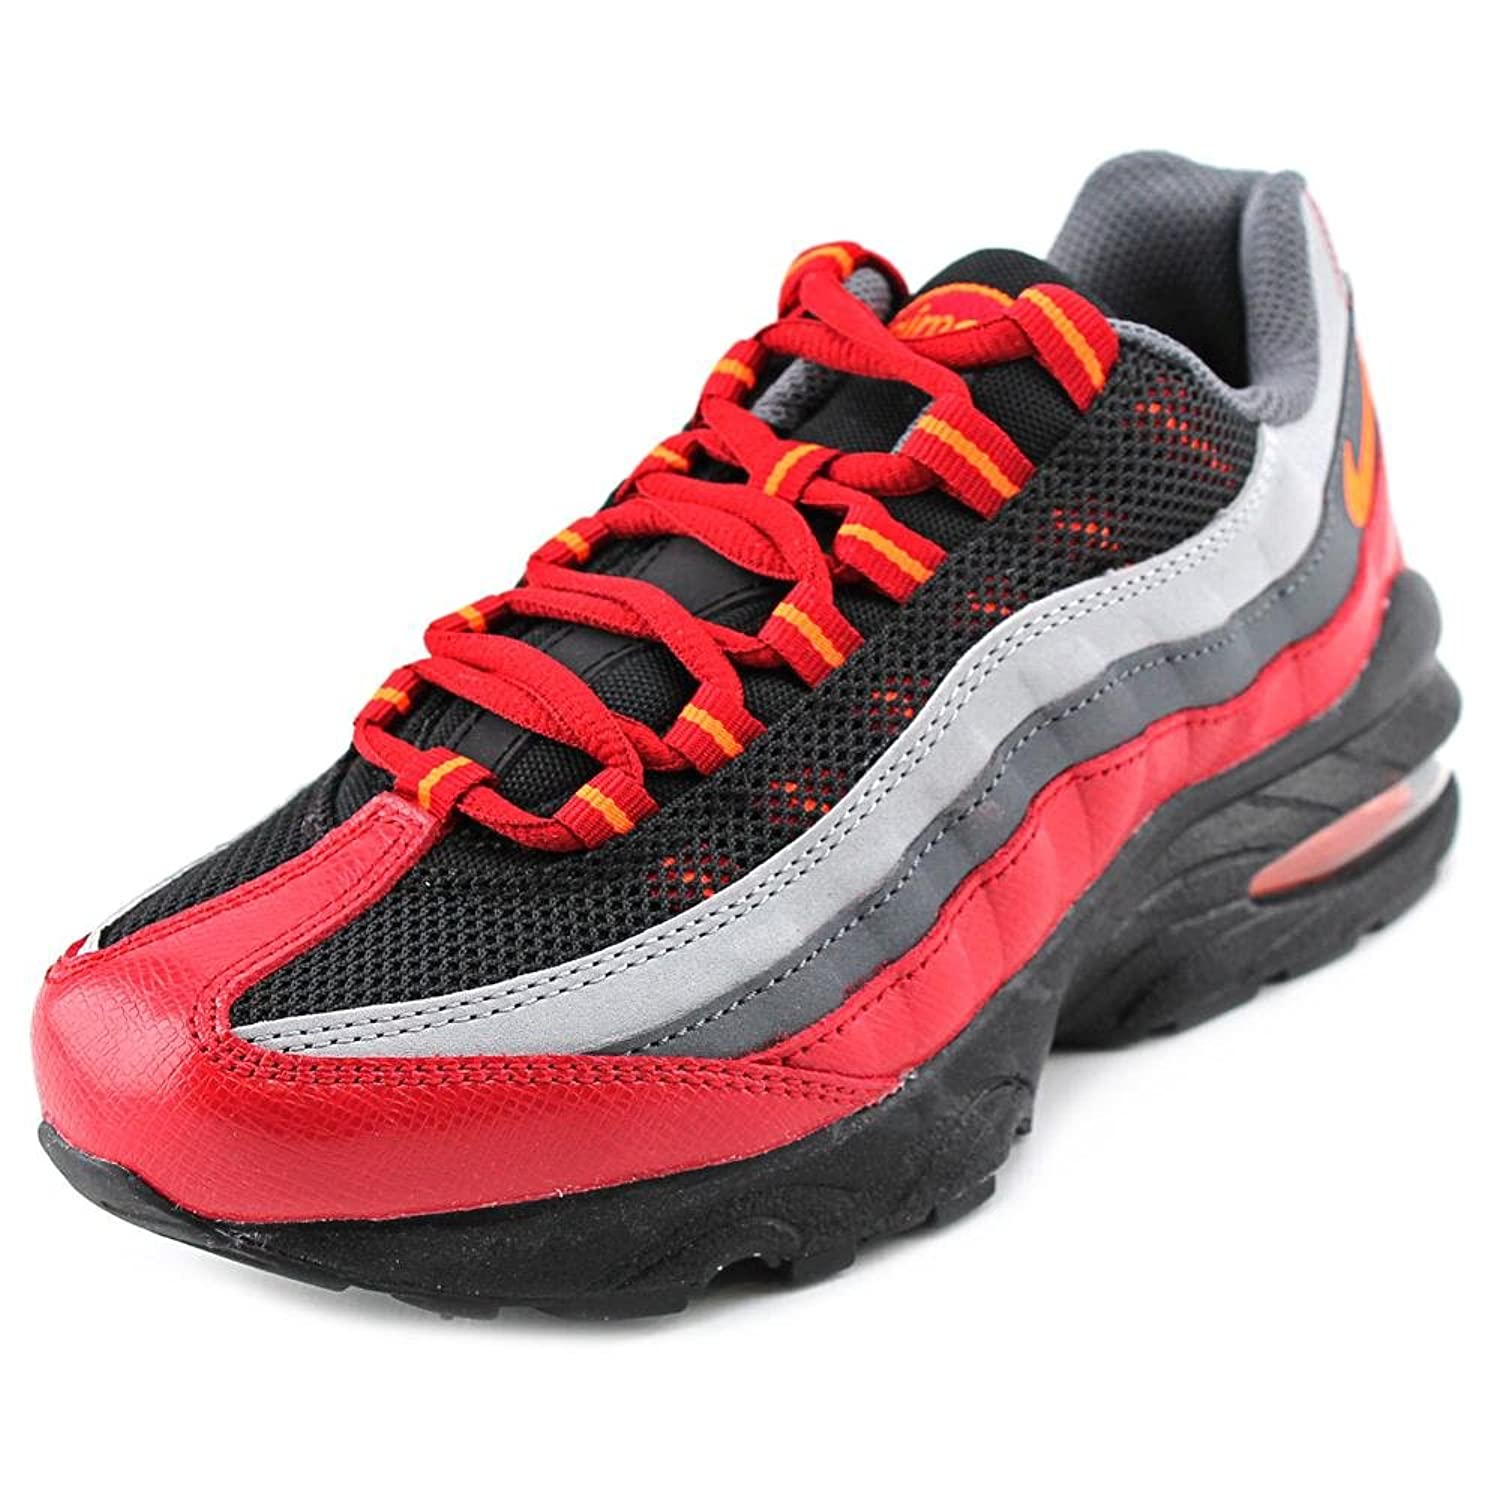 quality design 303e8 e56c2 nike air max 95 (GS) trainers 307565 sneakers shoes free shipping